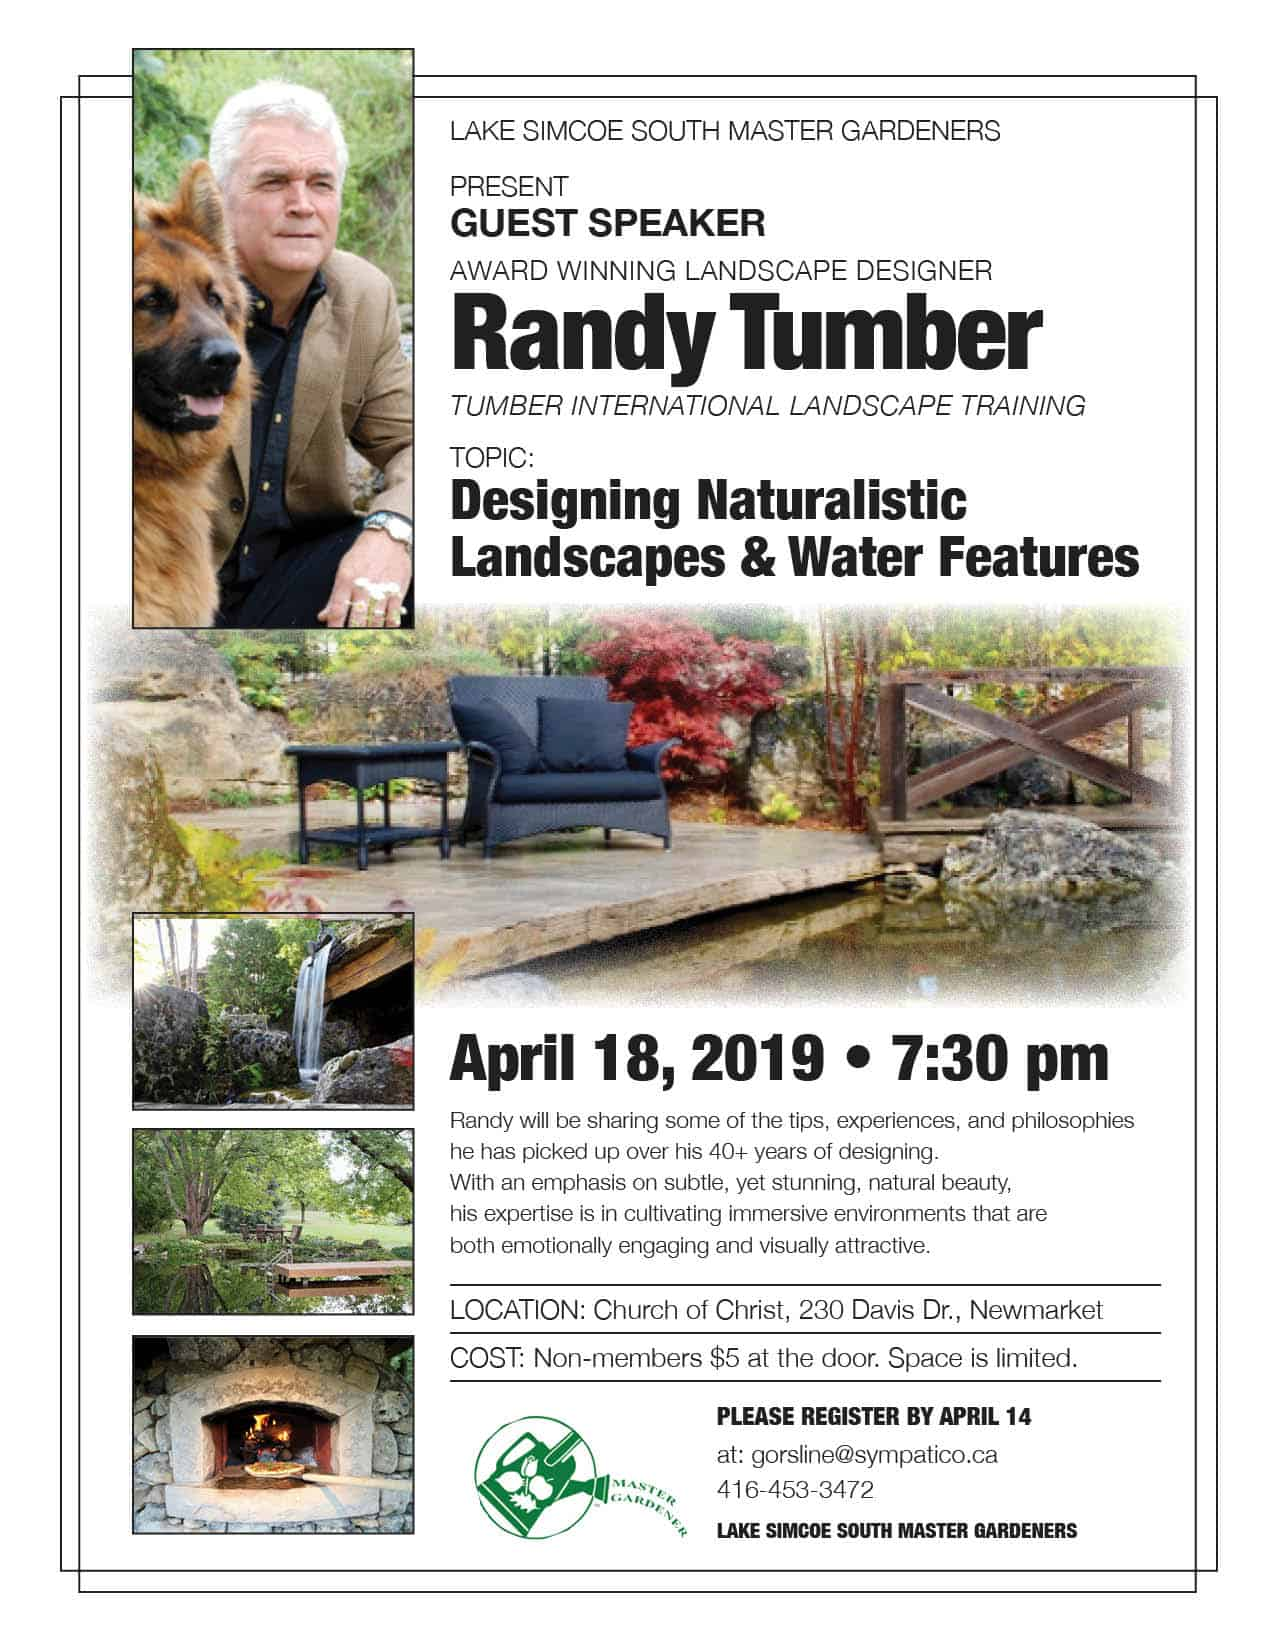 Designing Naturalistic Water features and Landscapes - Randy Tumber